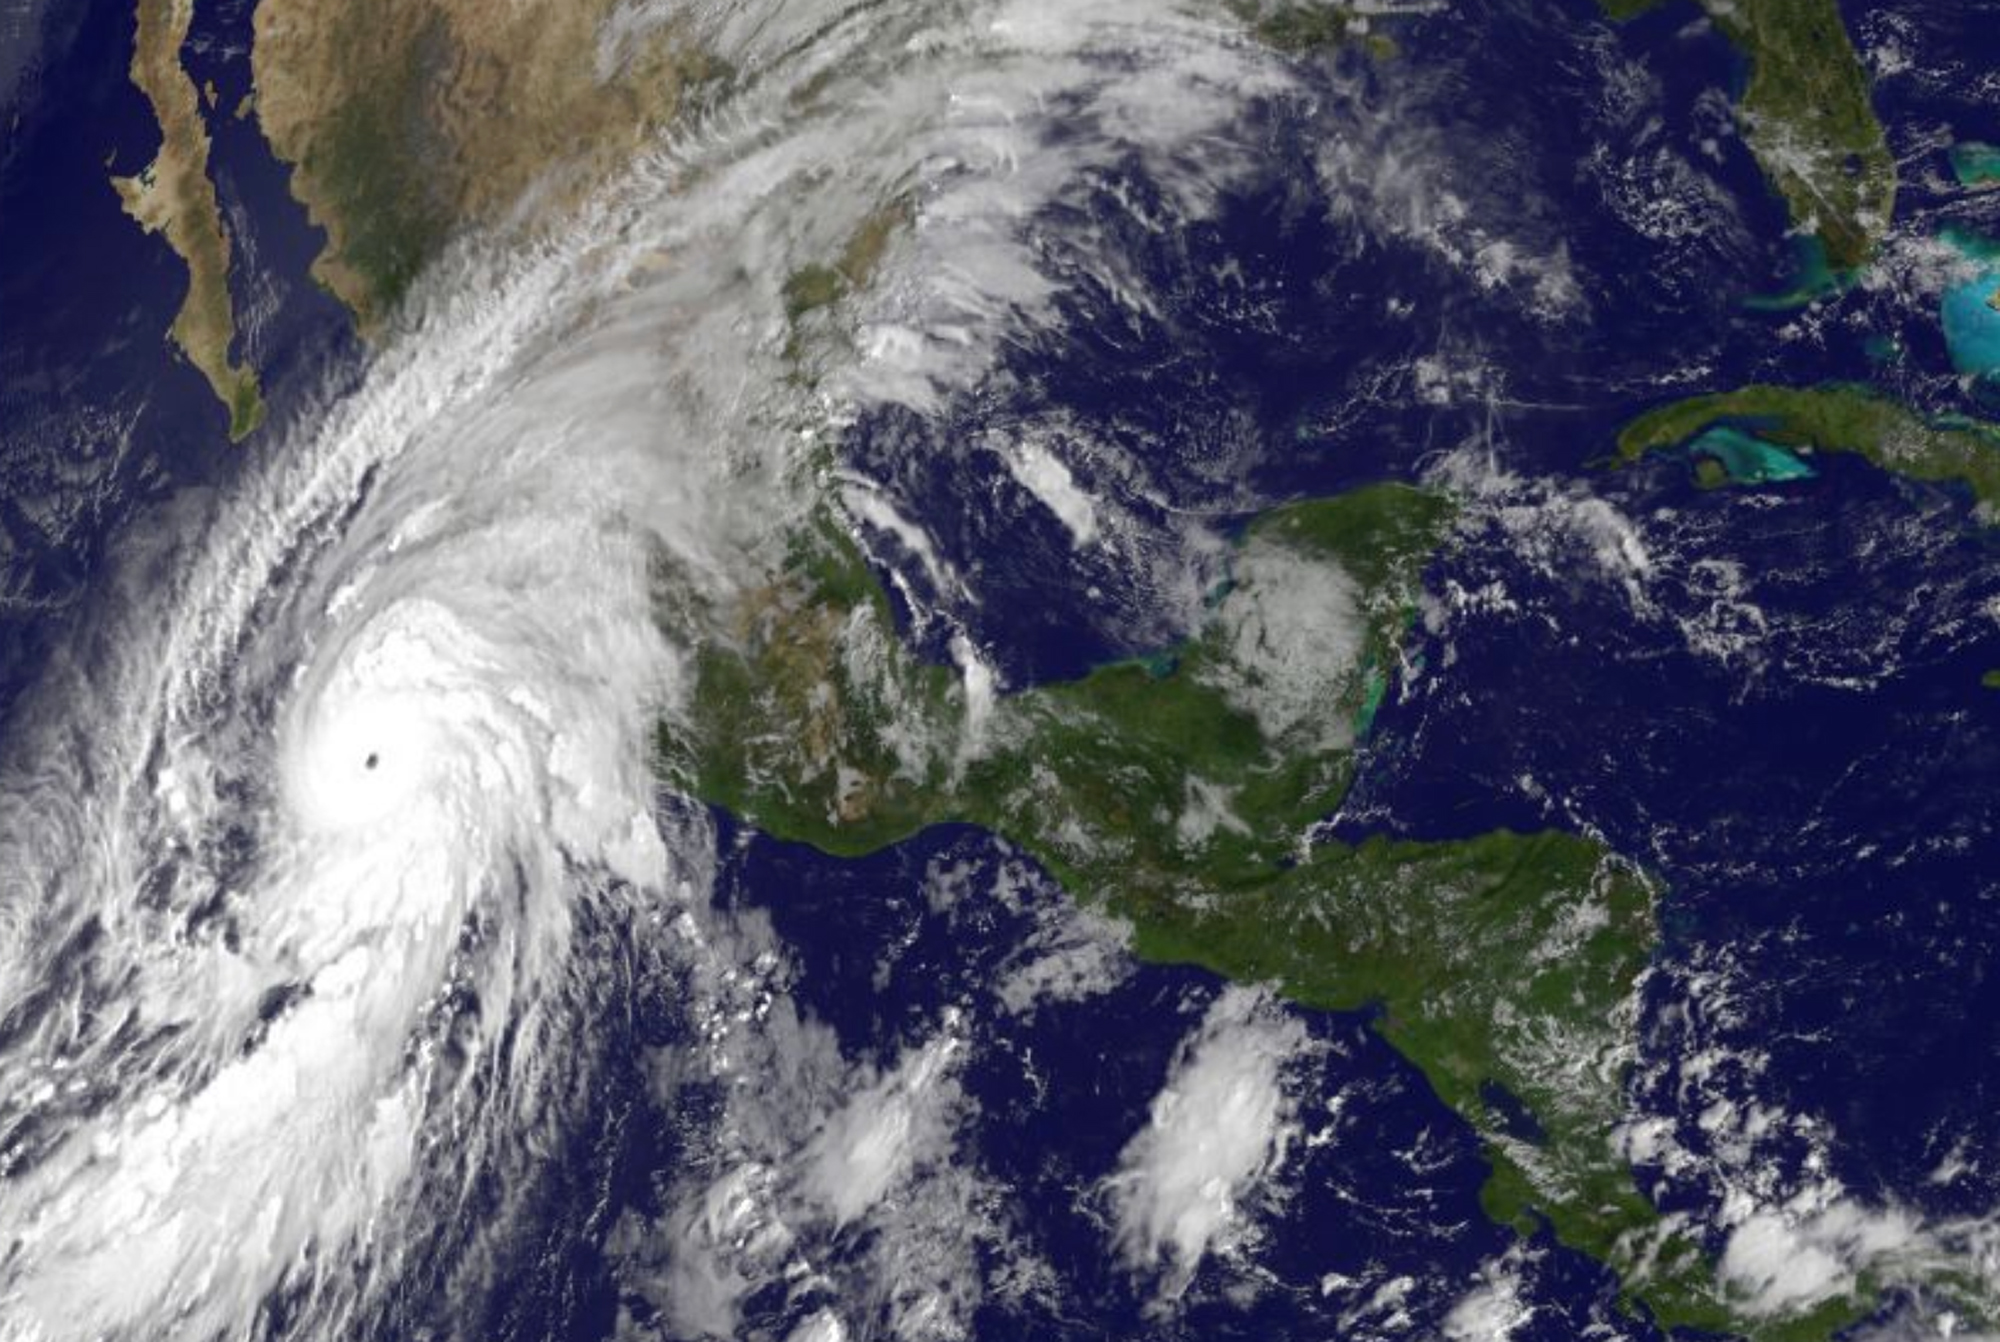 """CORRECTS TIME TAKEN TO 10 A.M. NOT 11 A.M. - This satellite image taken at 10 a.m.. EDT on Friday, Oct. 23, 2015, and released by the National Oceanic and Atmospheric Administration shows Hurricane Patricia, left, moving over Mexico's  Pacific Coast. Hurricane Patricia headed toward southwestern Mexico Friday as a monster Category 5 storm, the strongest ever in the Western Hemisphere that forecasters said could make a """"potentially catastrophic landfall"""" later in the day.  (NOAA via AP)"""